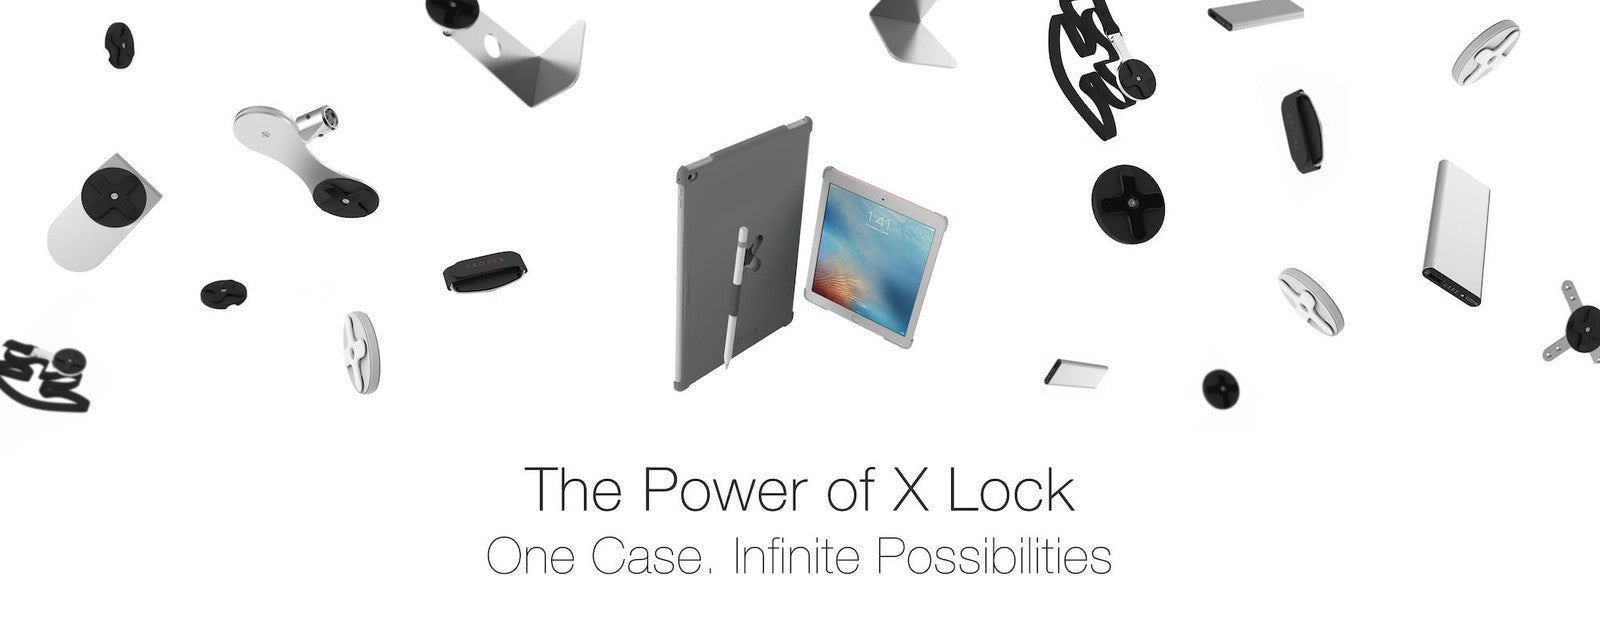 One Case, Infinite Possibilites